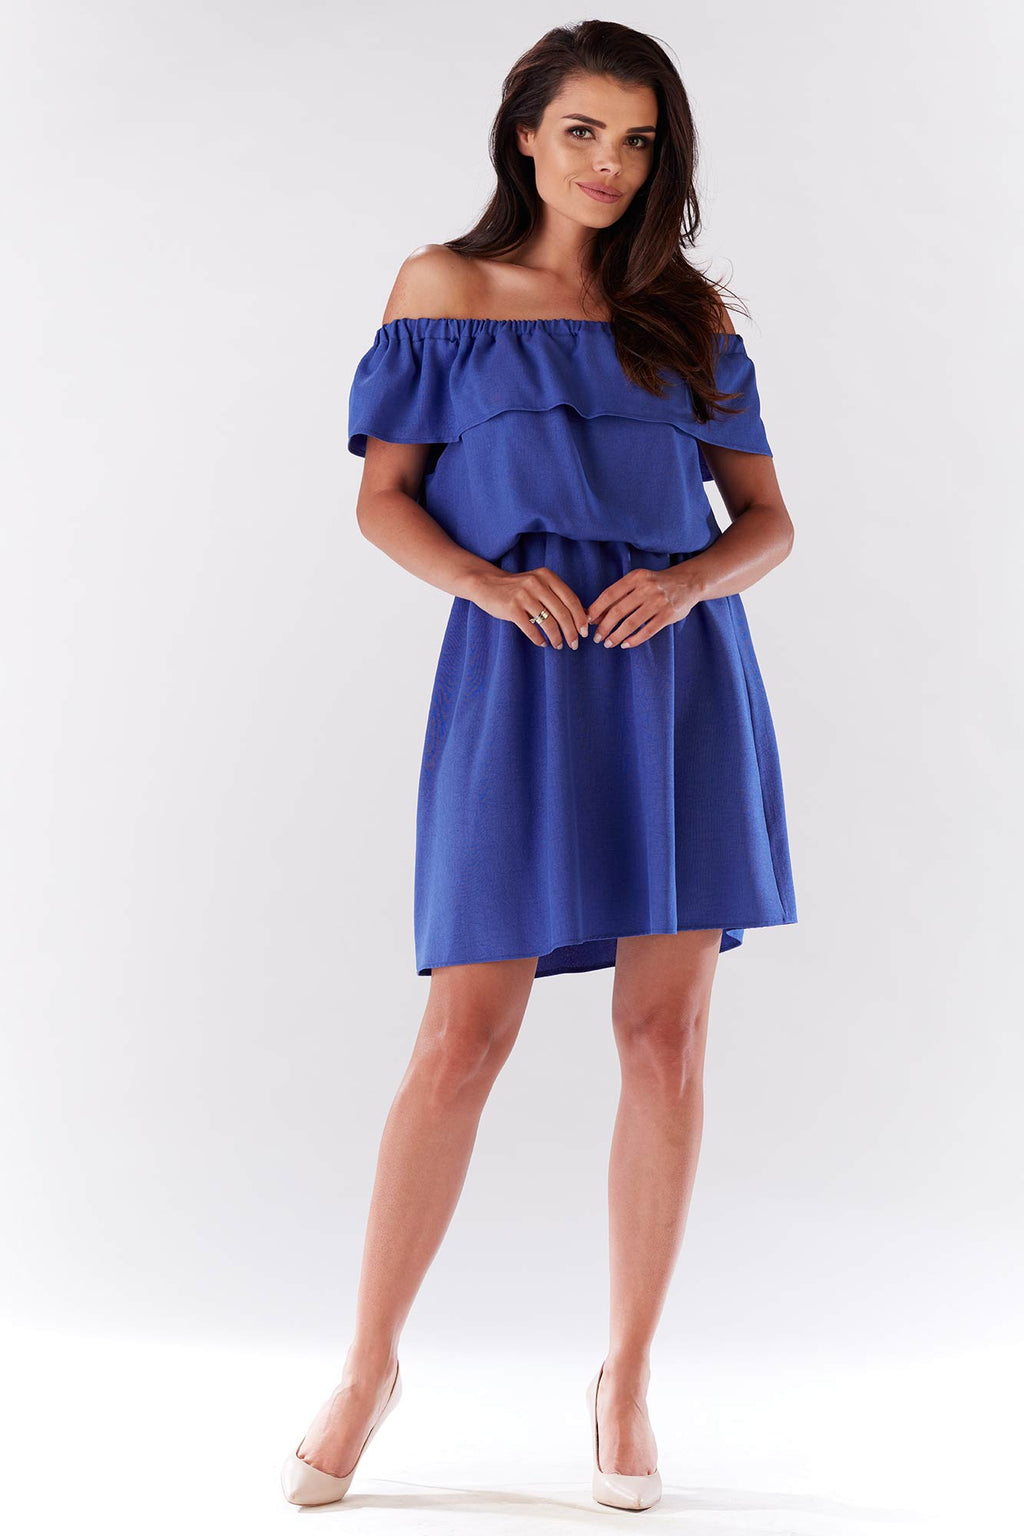 Mini Blue Off The Shoulder Linen Dress With Elastic Waist (9232567434)